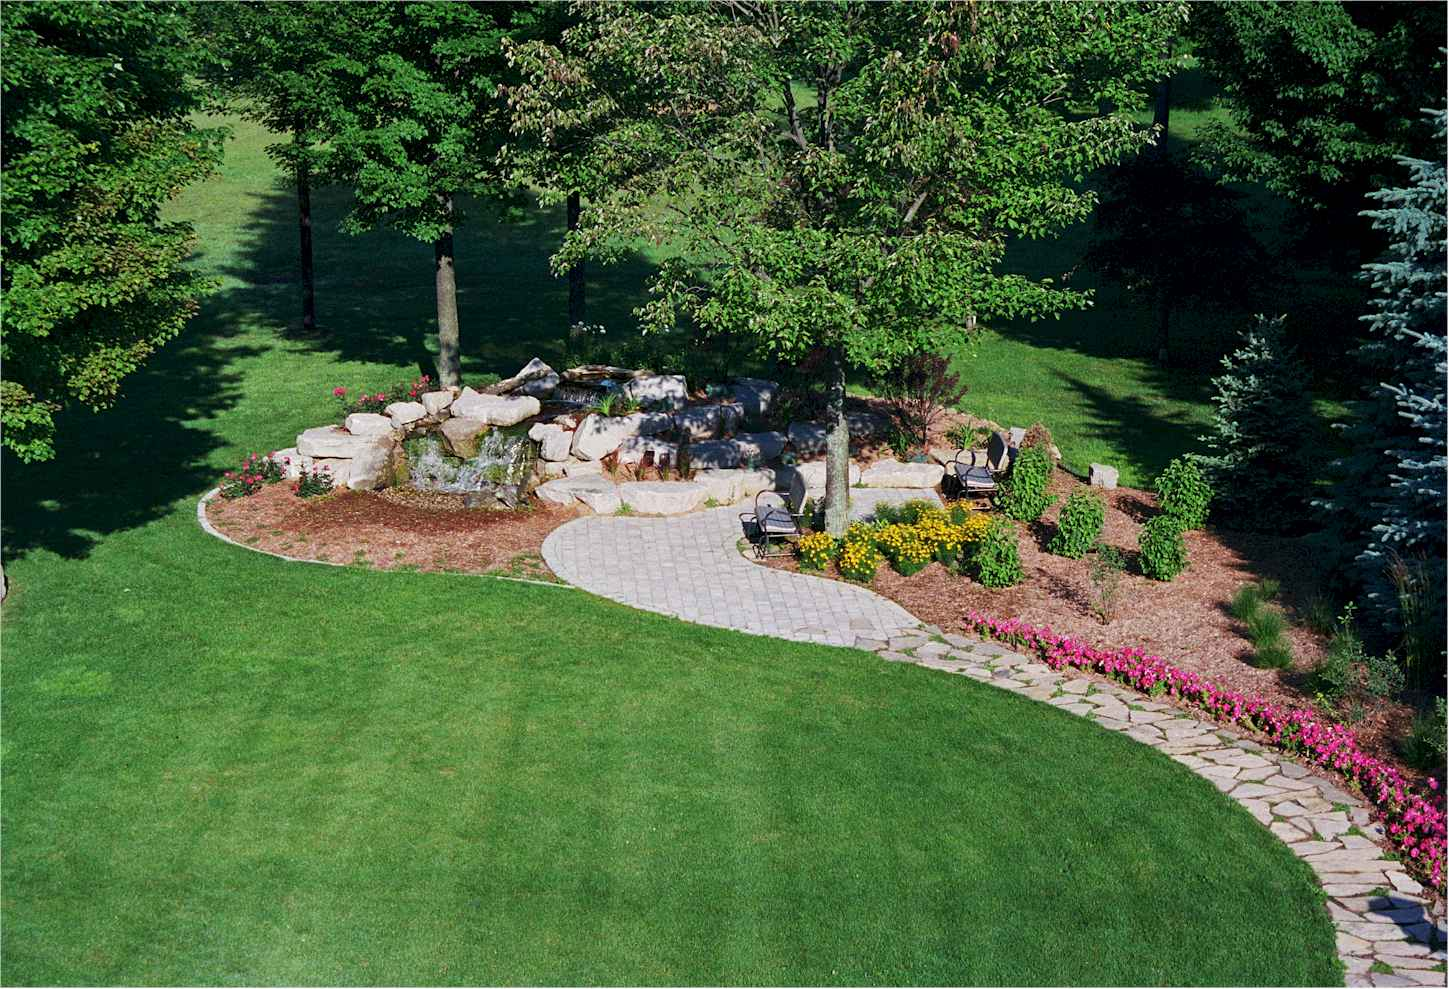 5 landscaping ideas to wow the neighbors for Simple landscape design